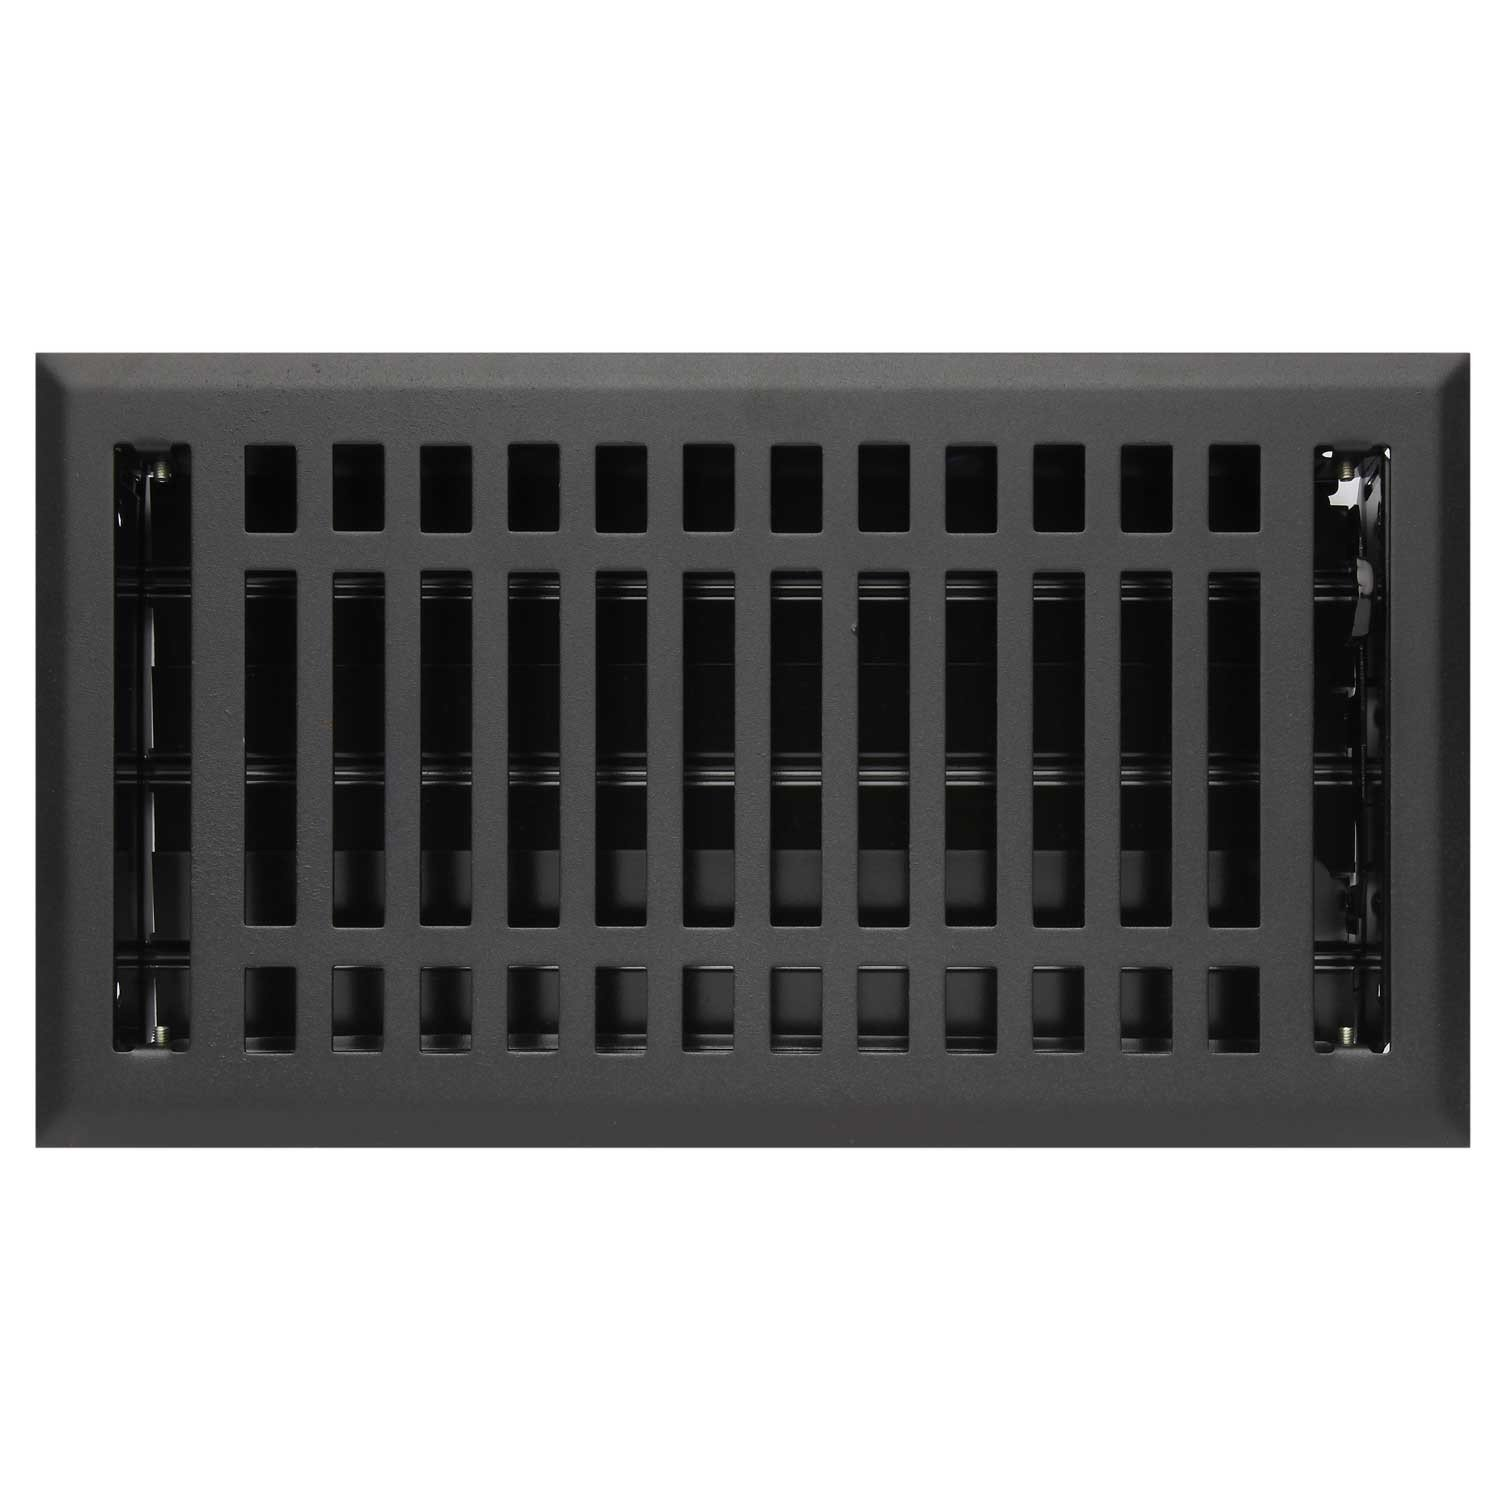 Naiture 4'' x 12'' Steel Wall Register Contemporary Style Black Finish